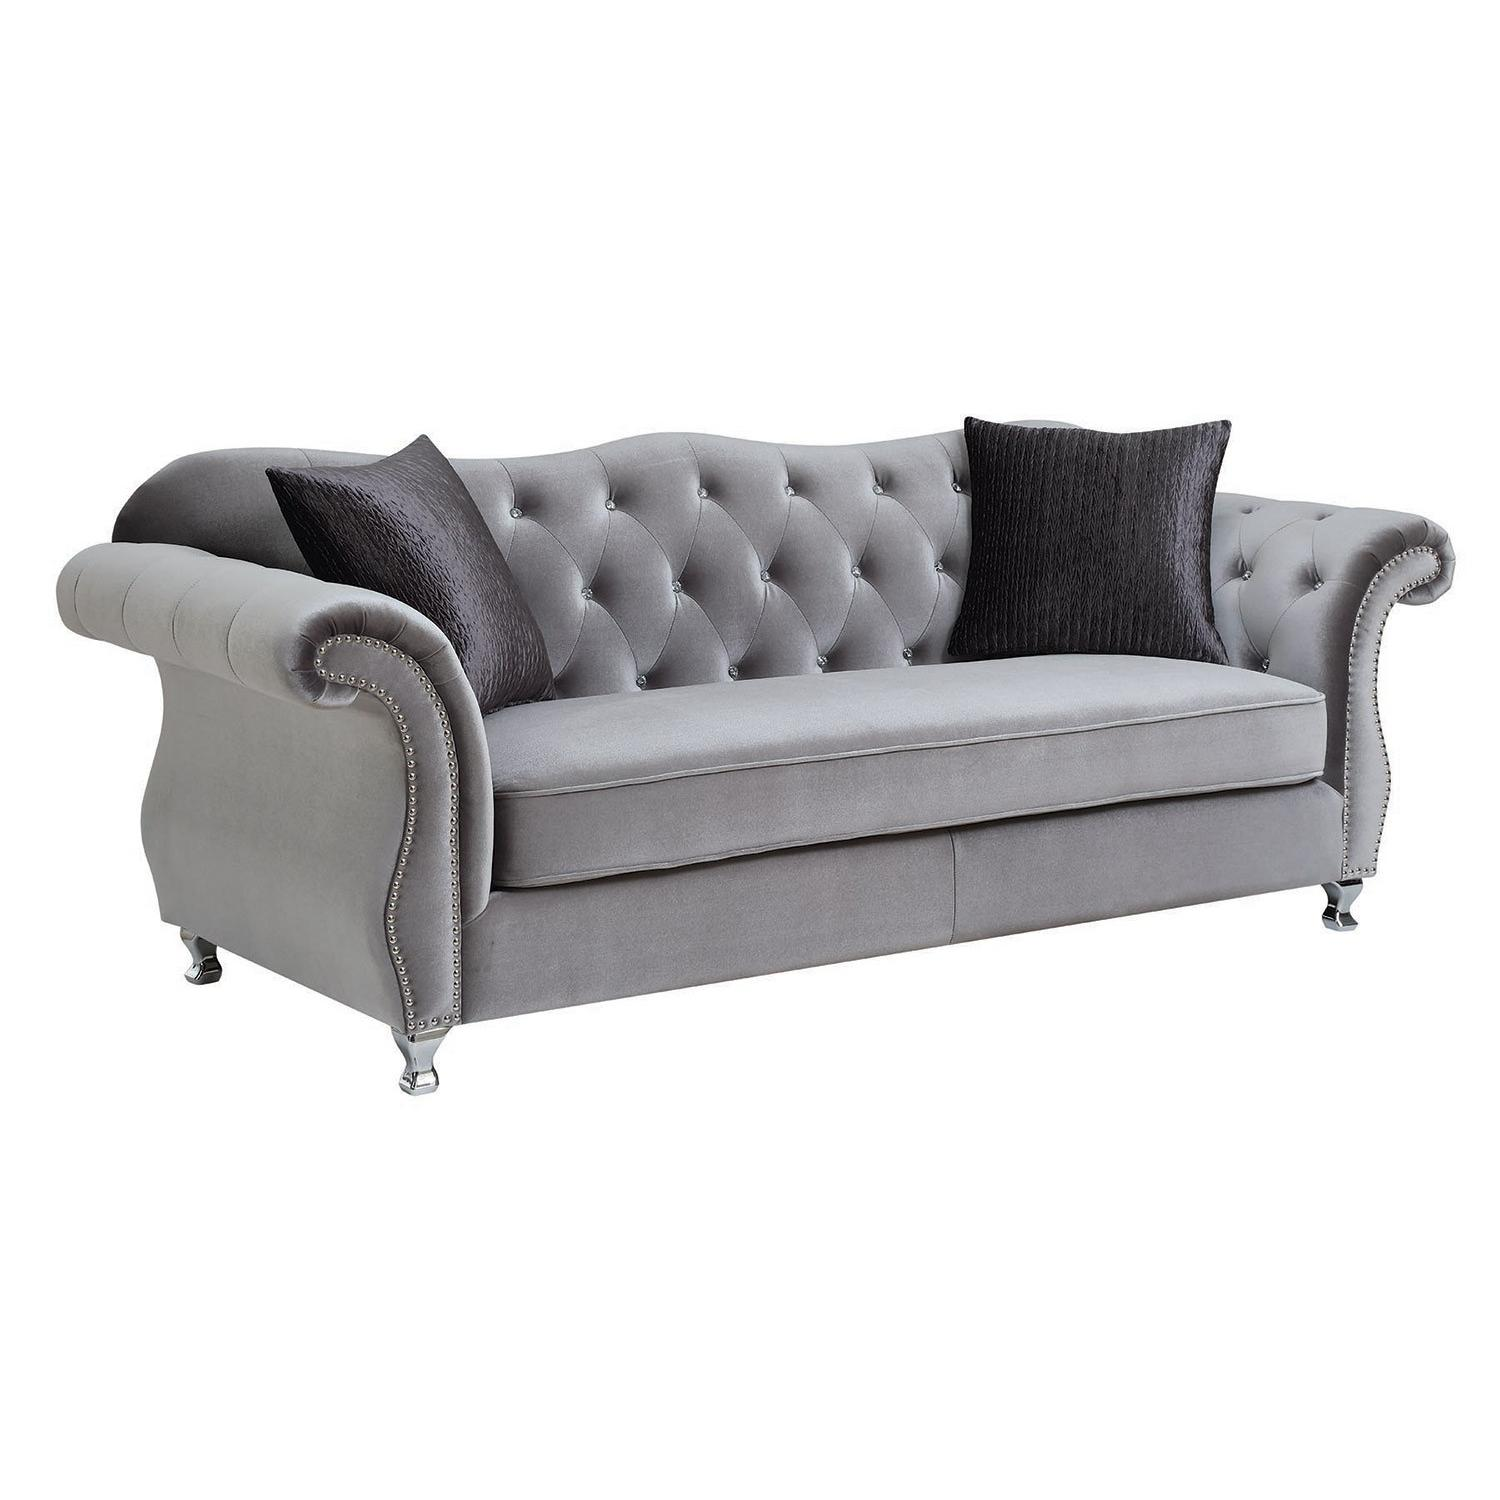 Grey Velvet Sofa W/ Tufted Crystal Accent ...